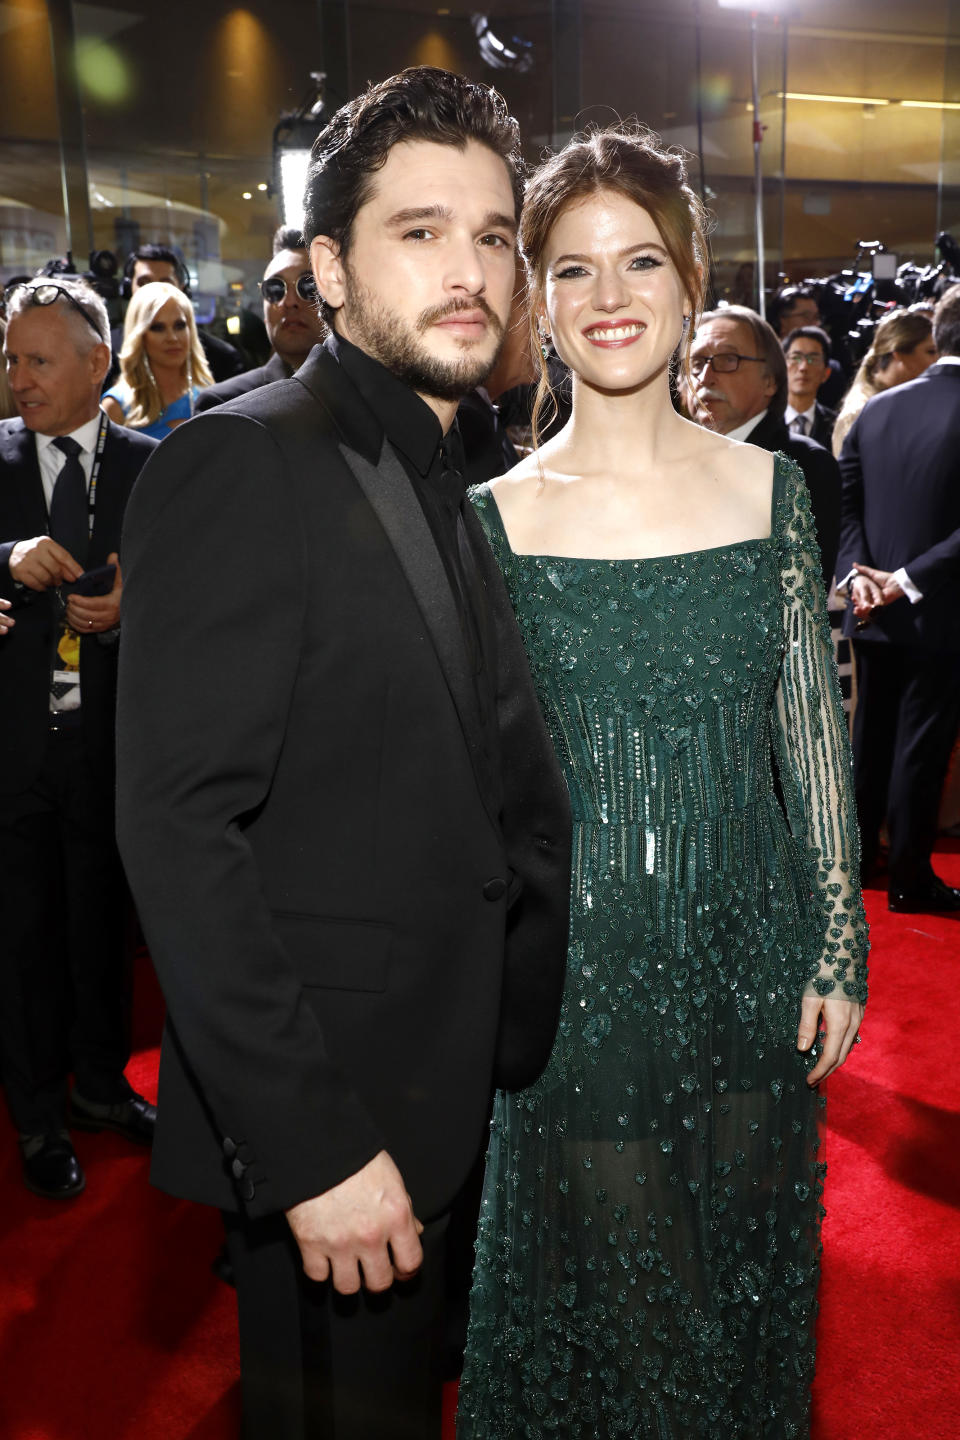 Kit Harington met wife Rose Leslie on 'Game of Thrones'. (Photo by Trae Patton/NBC/NBCU Photo Bank via Getty Images)